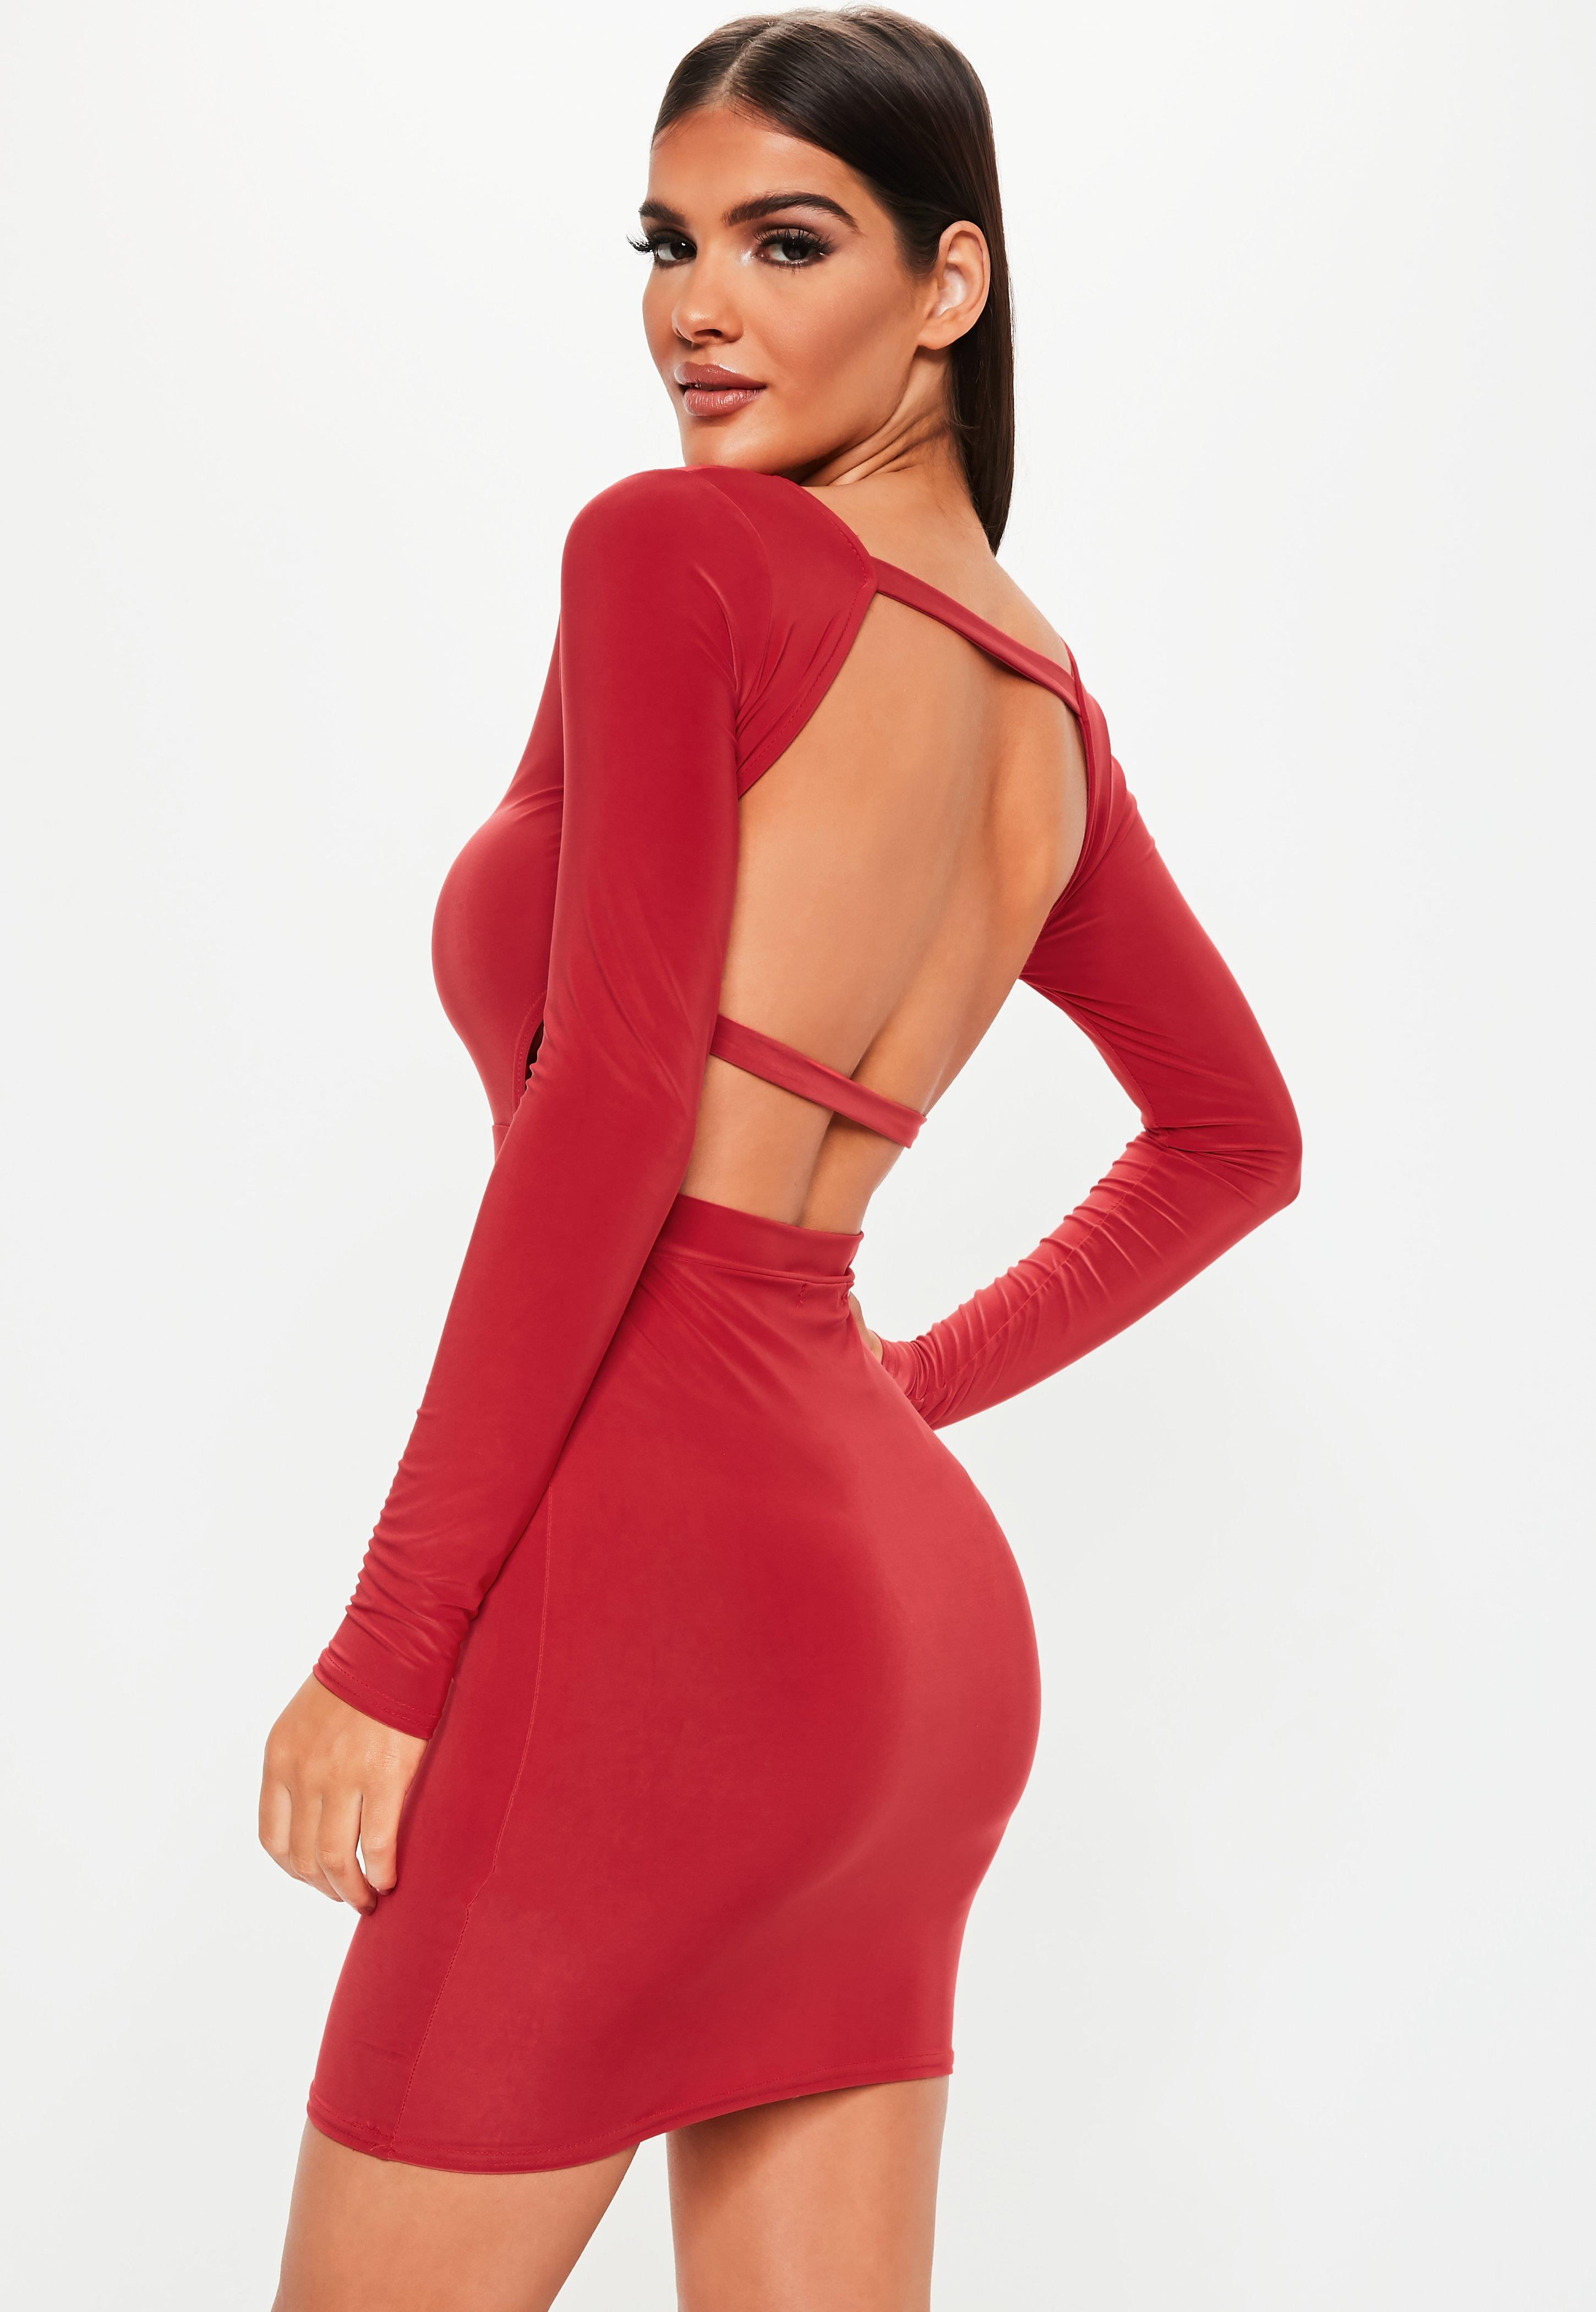 d4fcb4e810 Backless Dresses